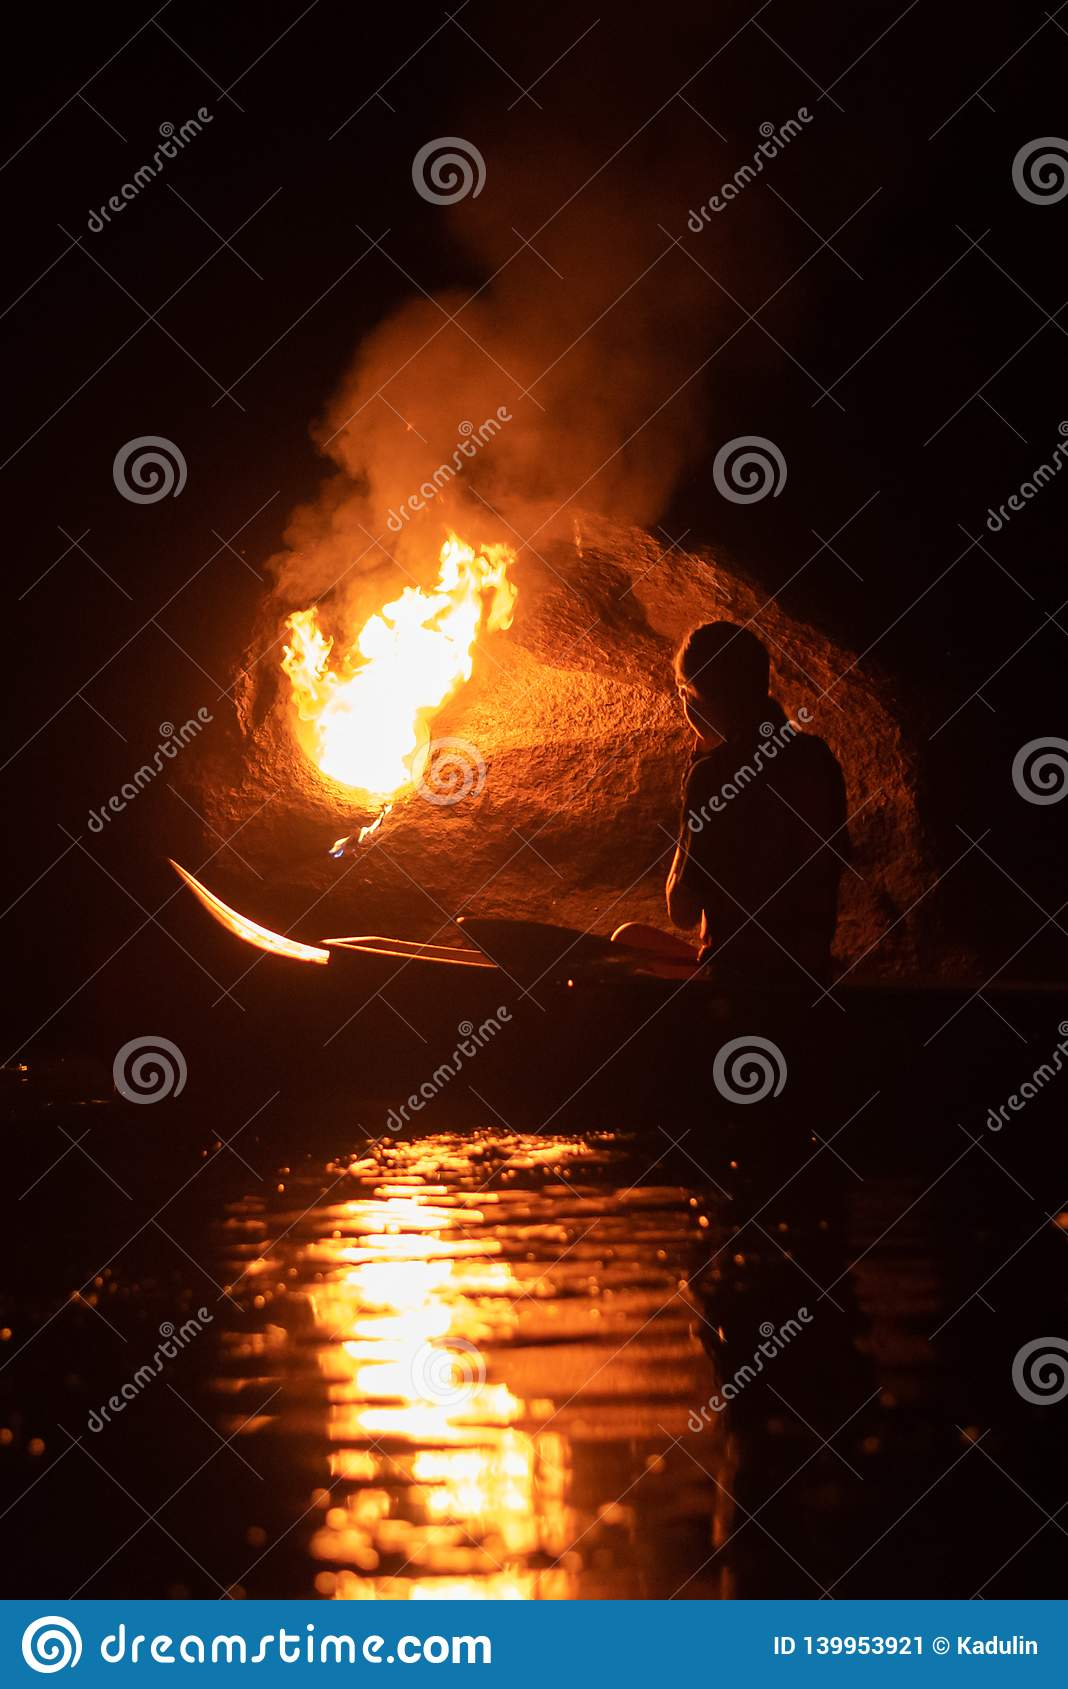 River keeper of fire  stock image  Image of boat, keeper - 139953921